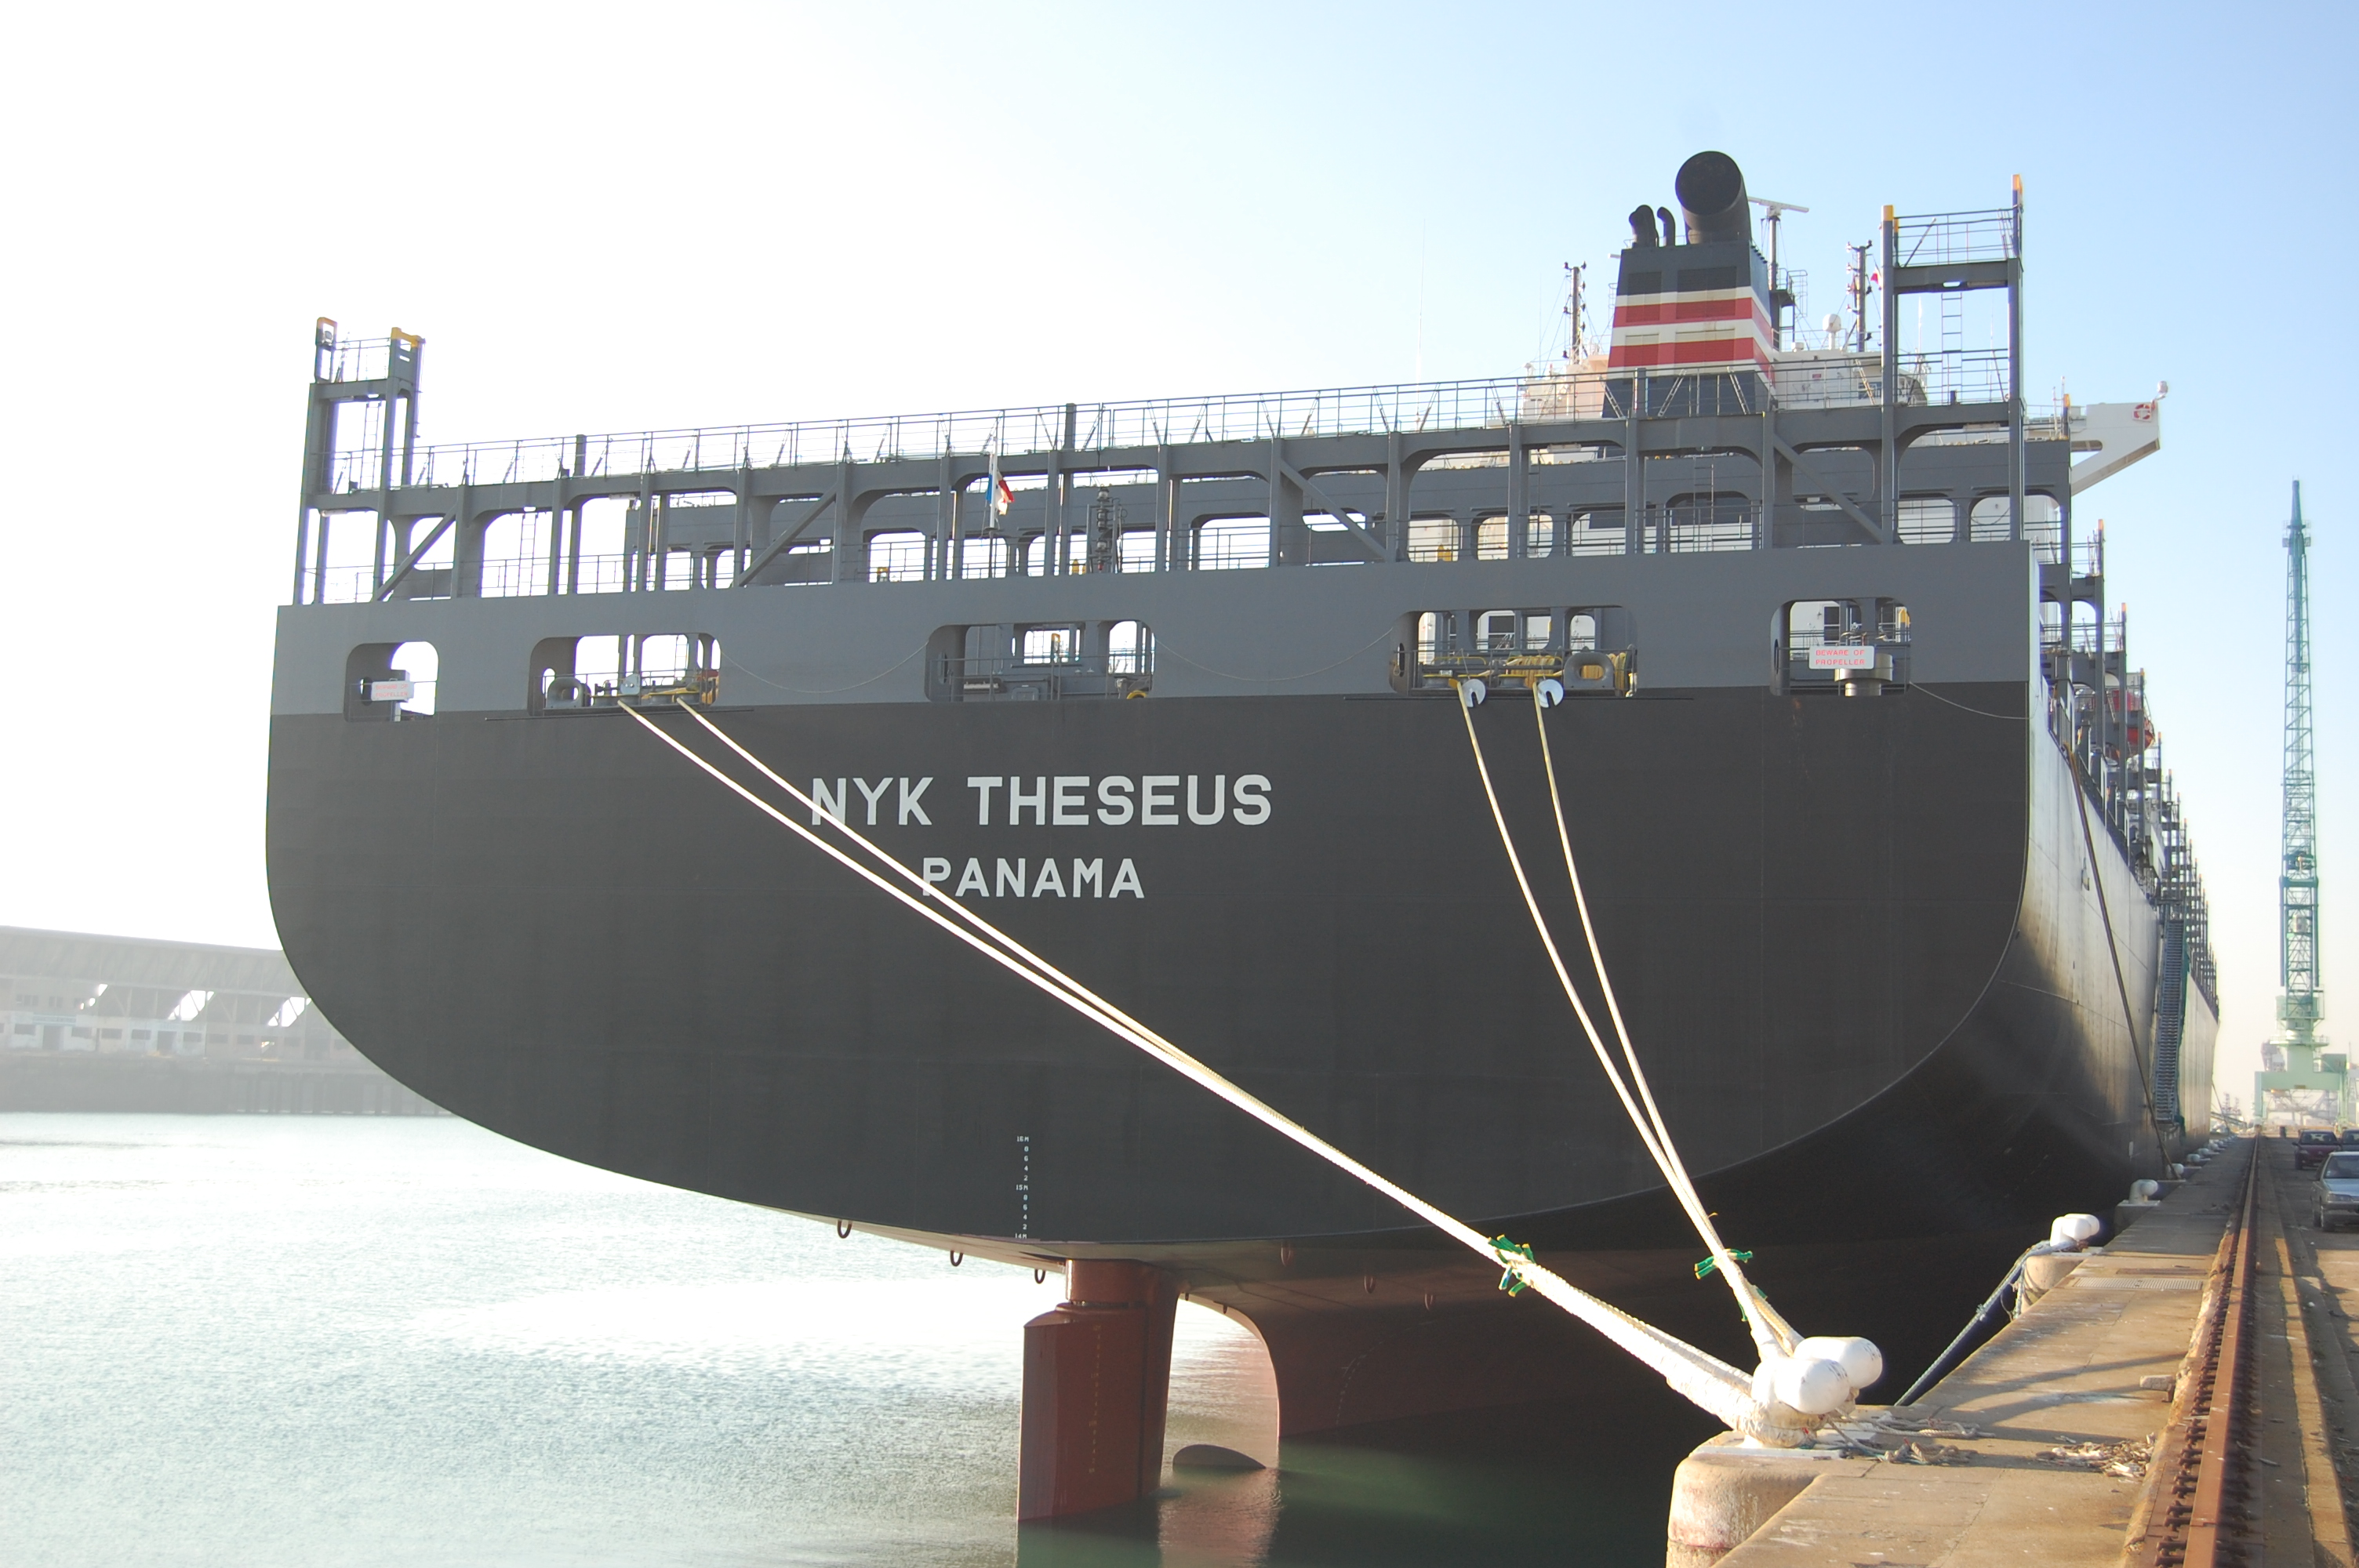 File:NYK Theseus JPG - Wikimedia Commons